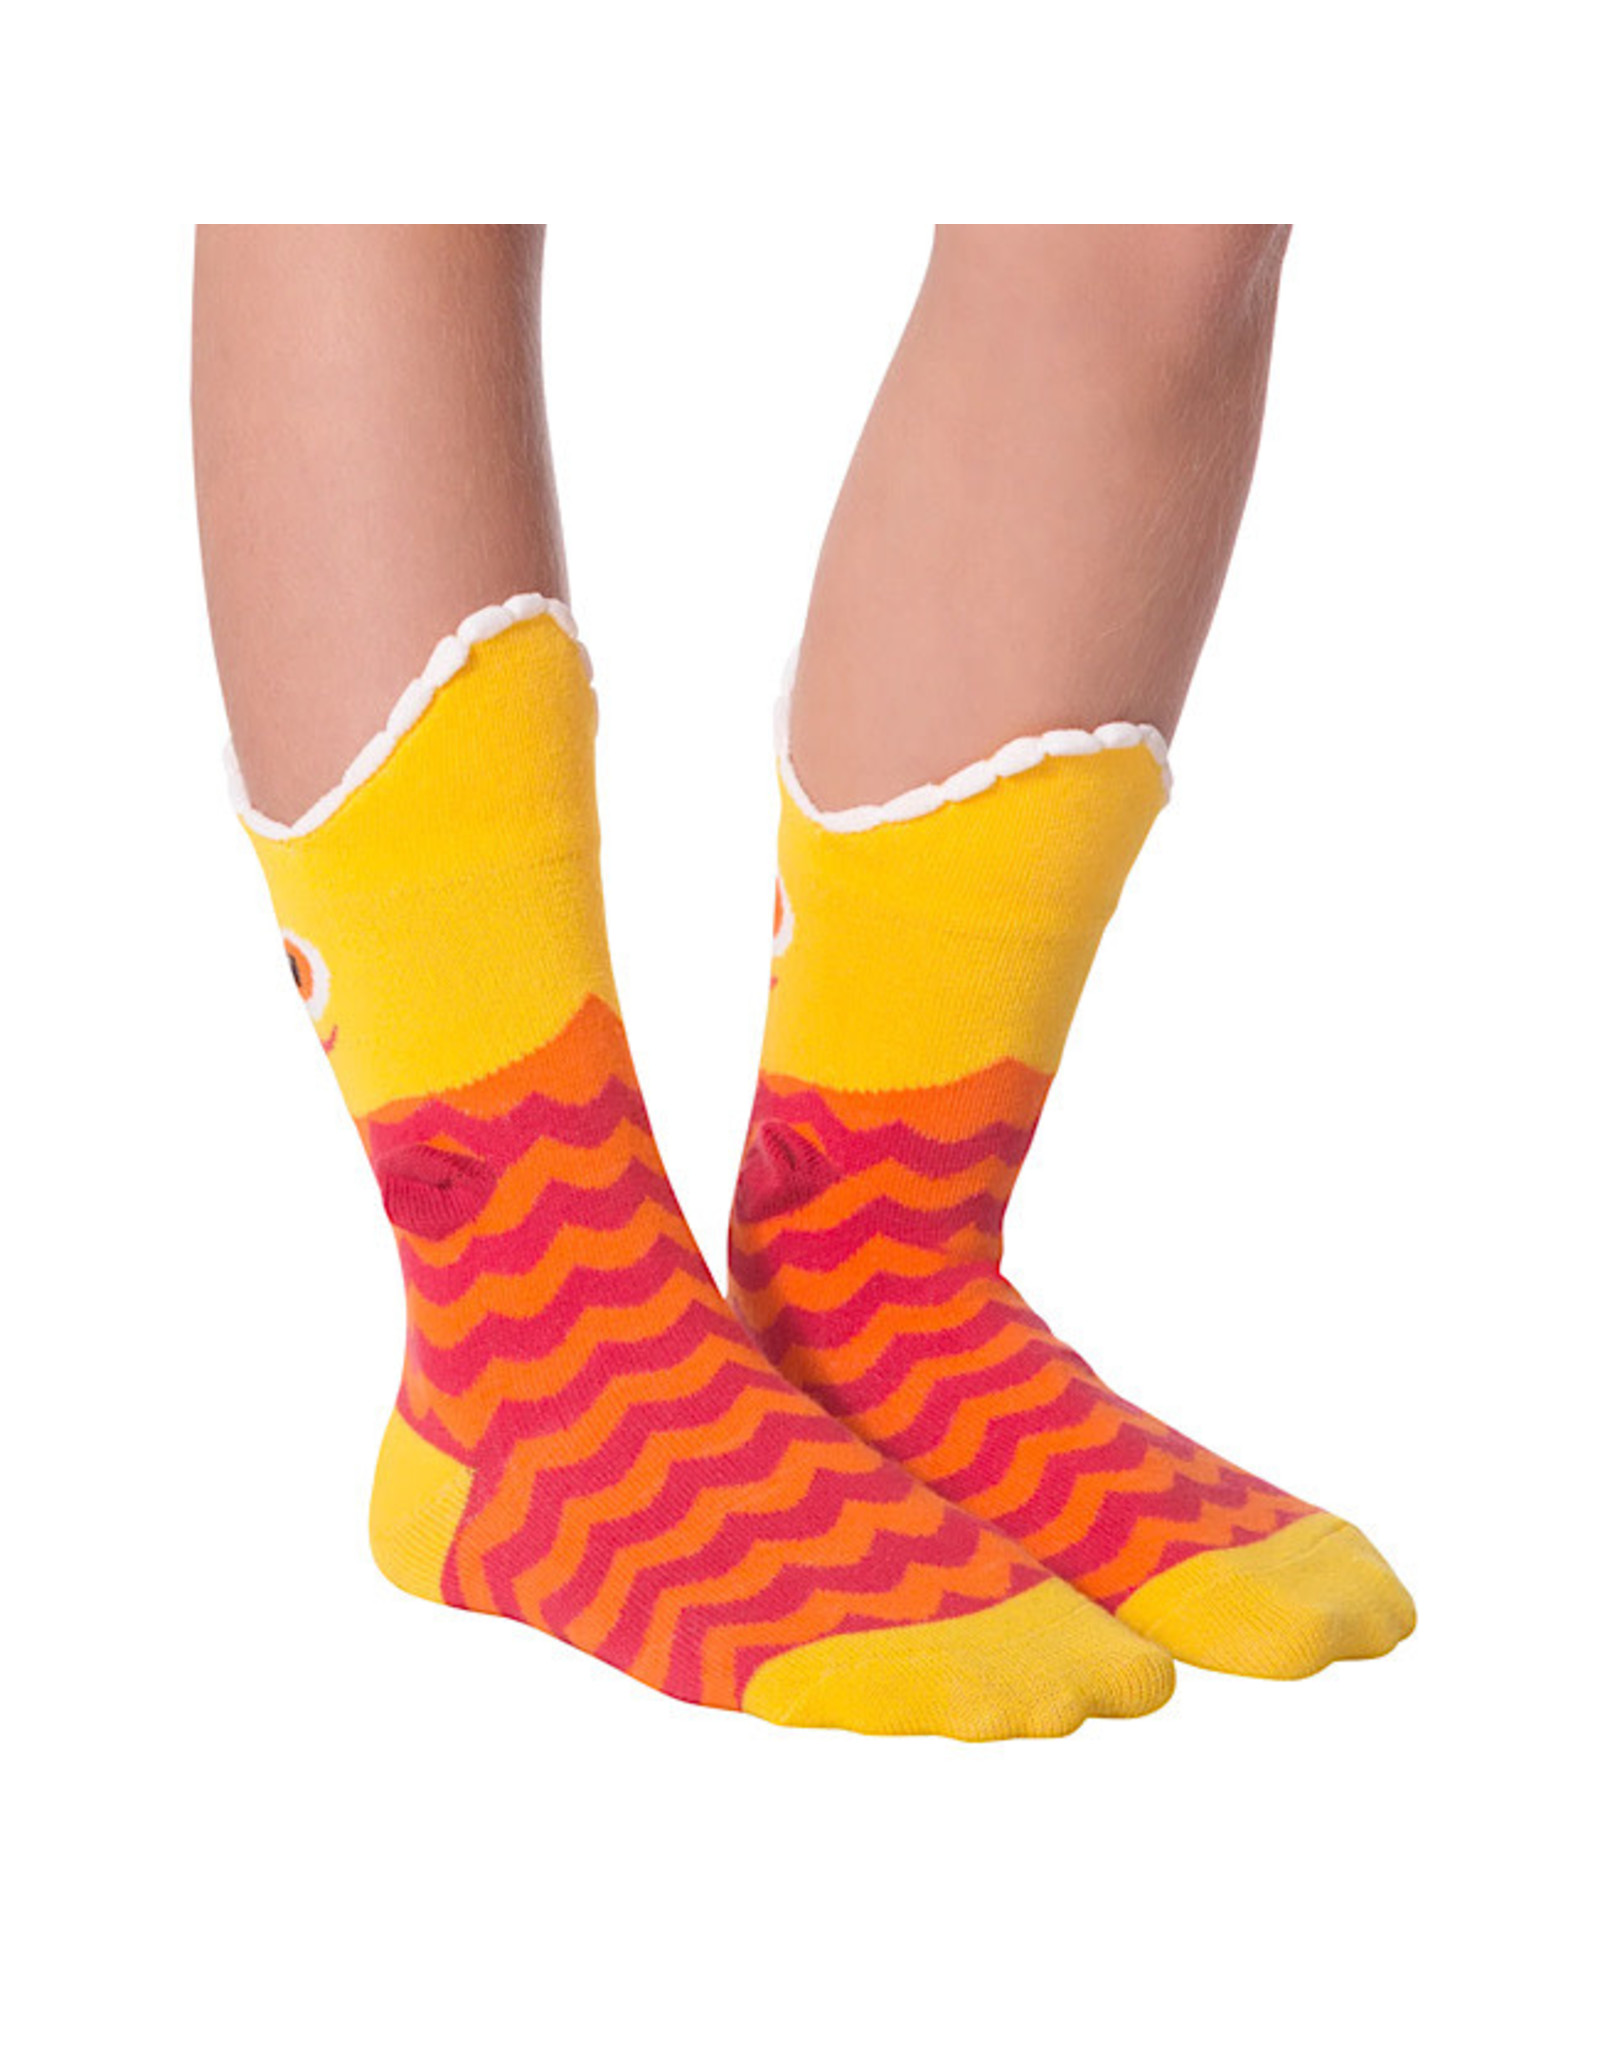 Socks (Kids) - Wide Mouth Fish (Yellow)